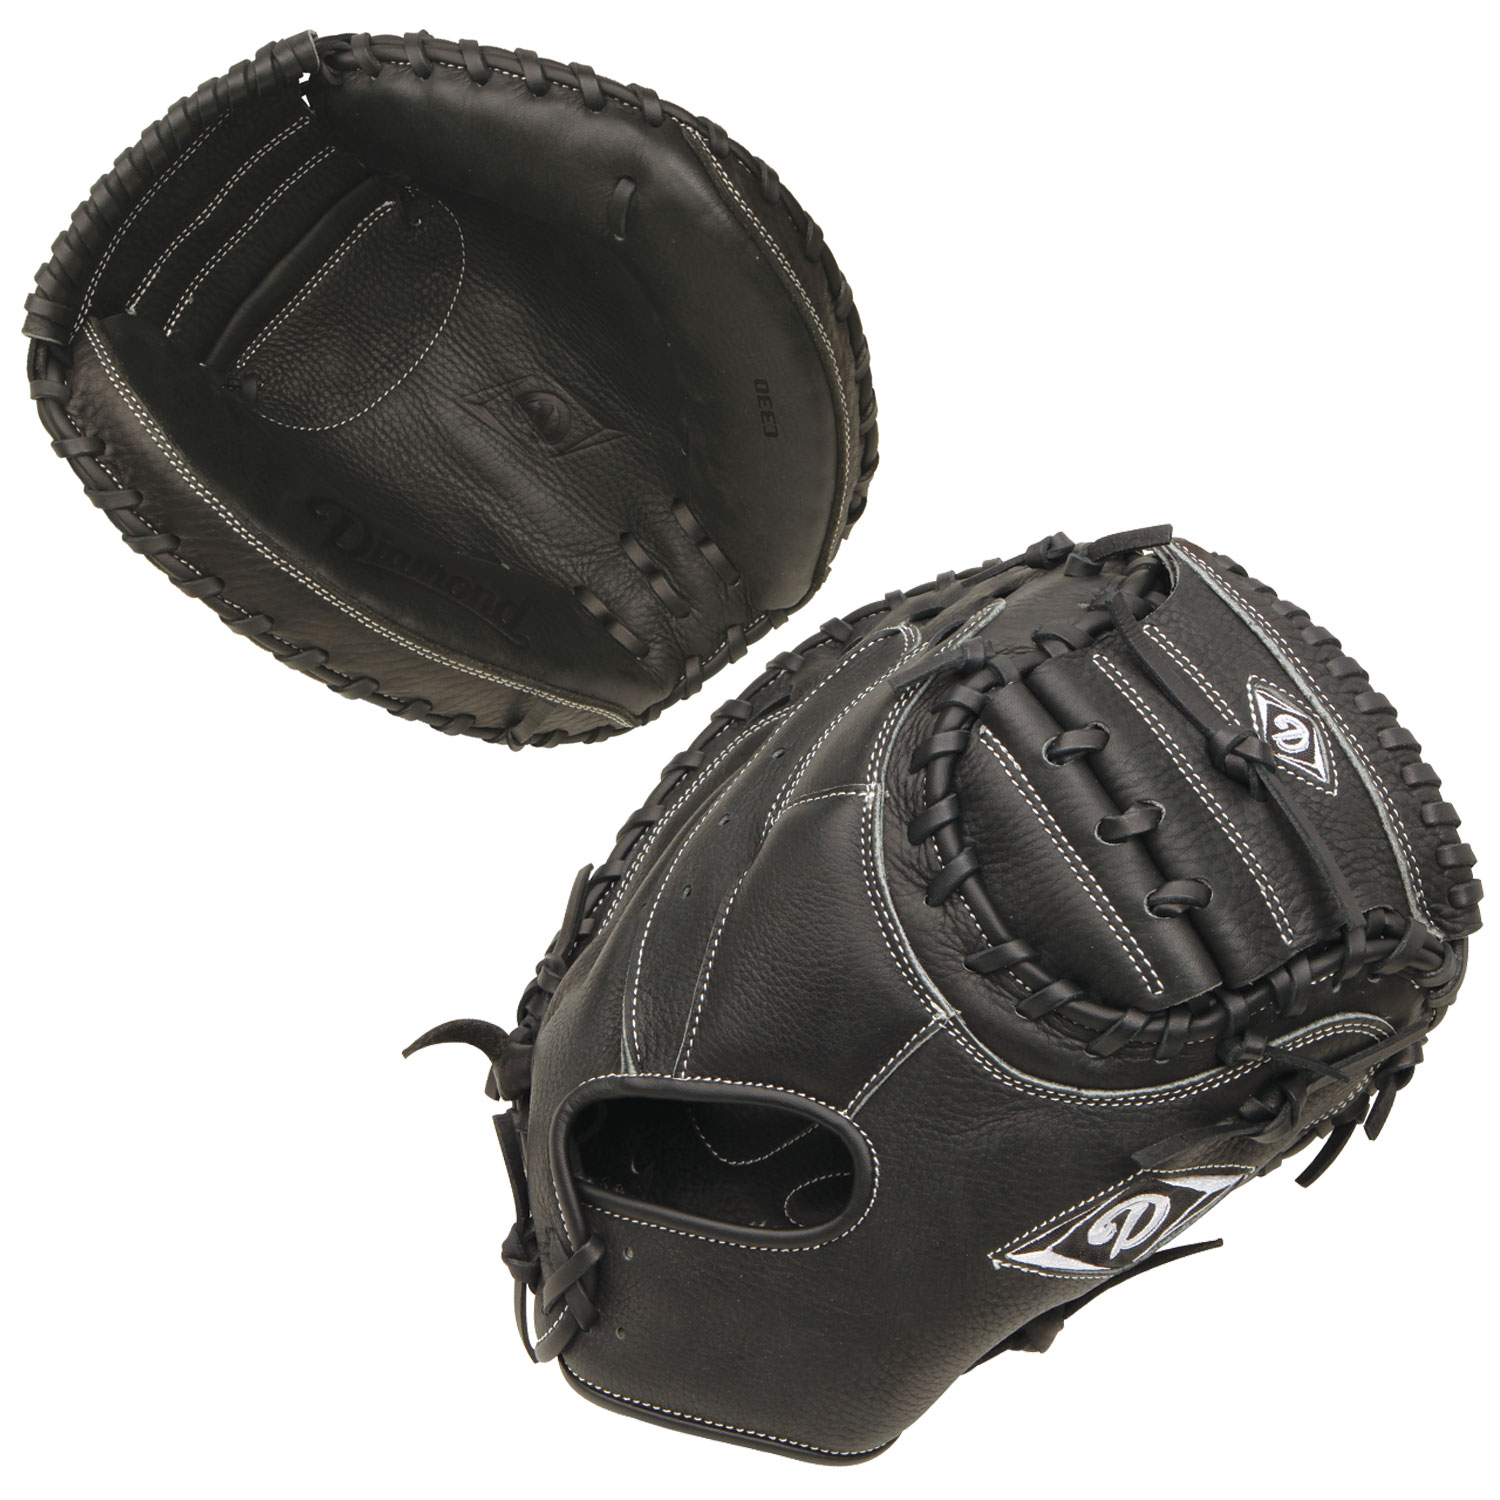 Diamond C330 33 Inch DCM-C330 Baseball Catcher's Mitt by